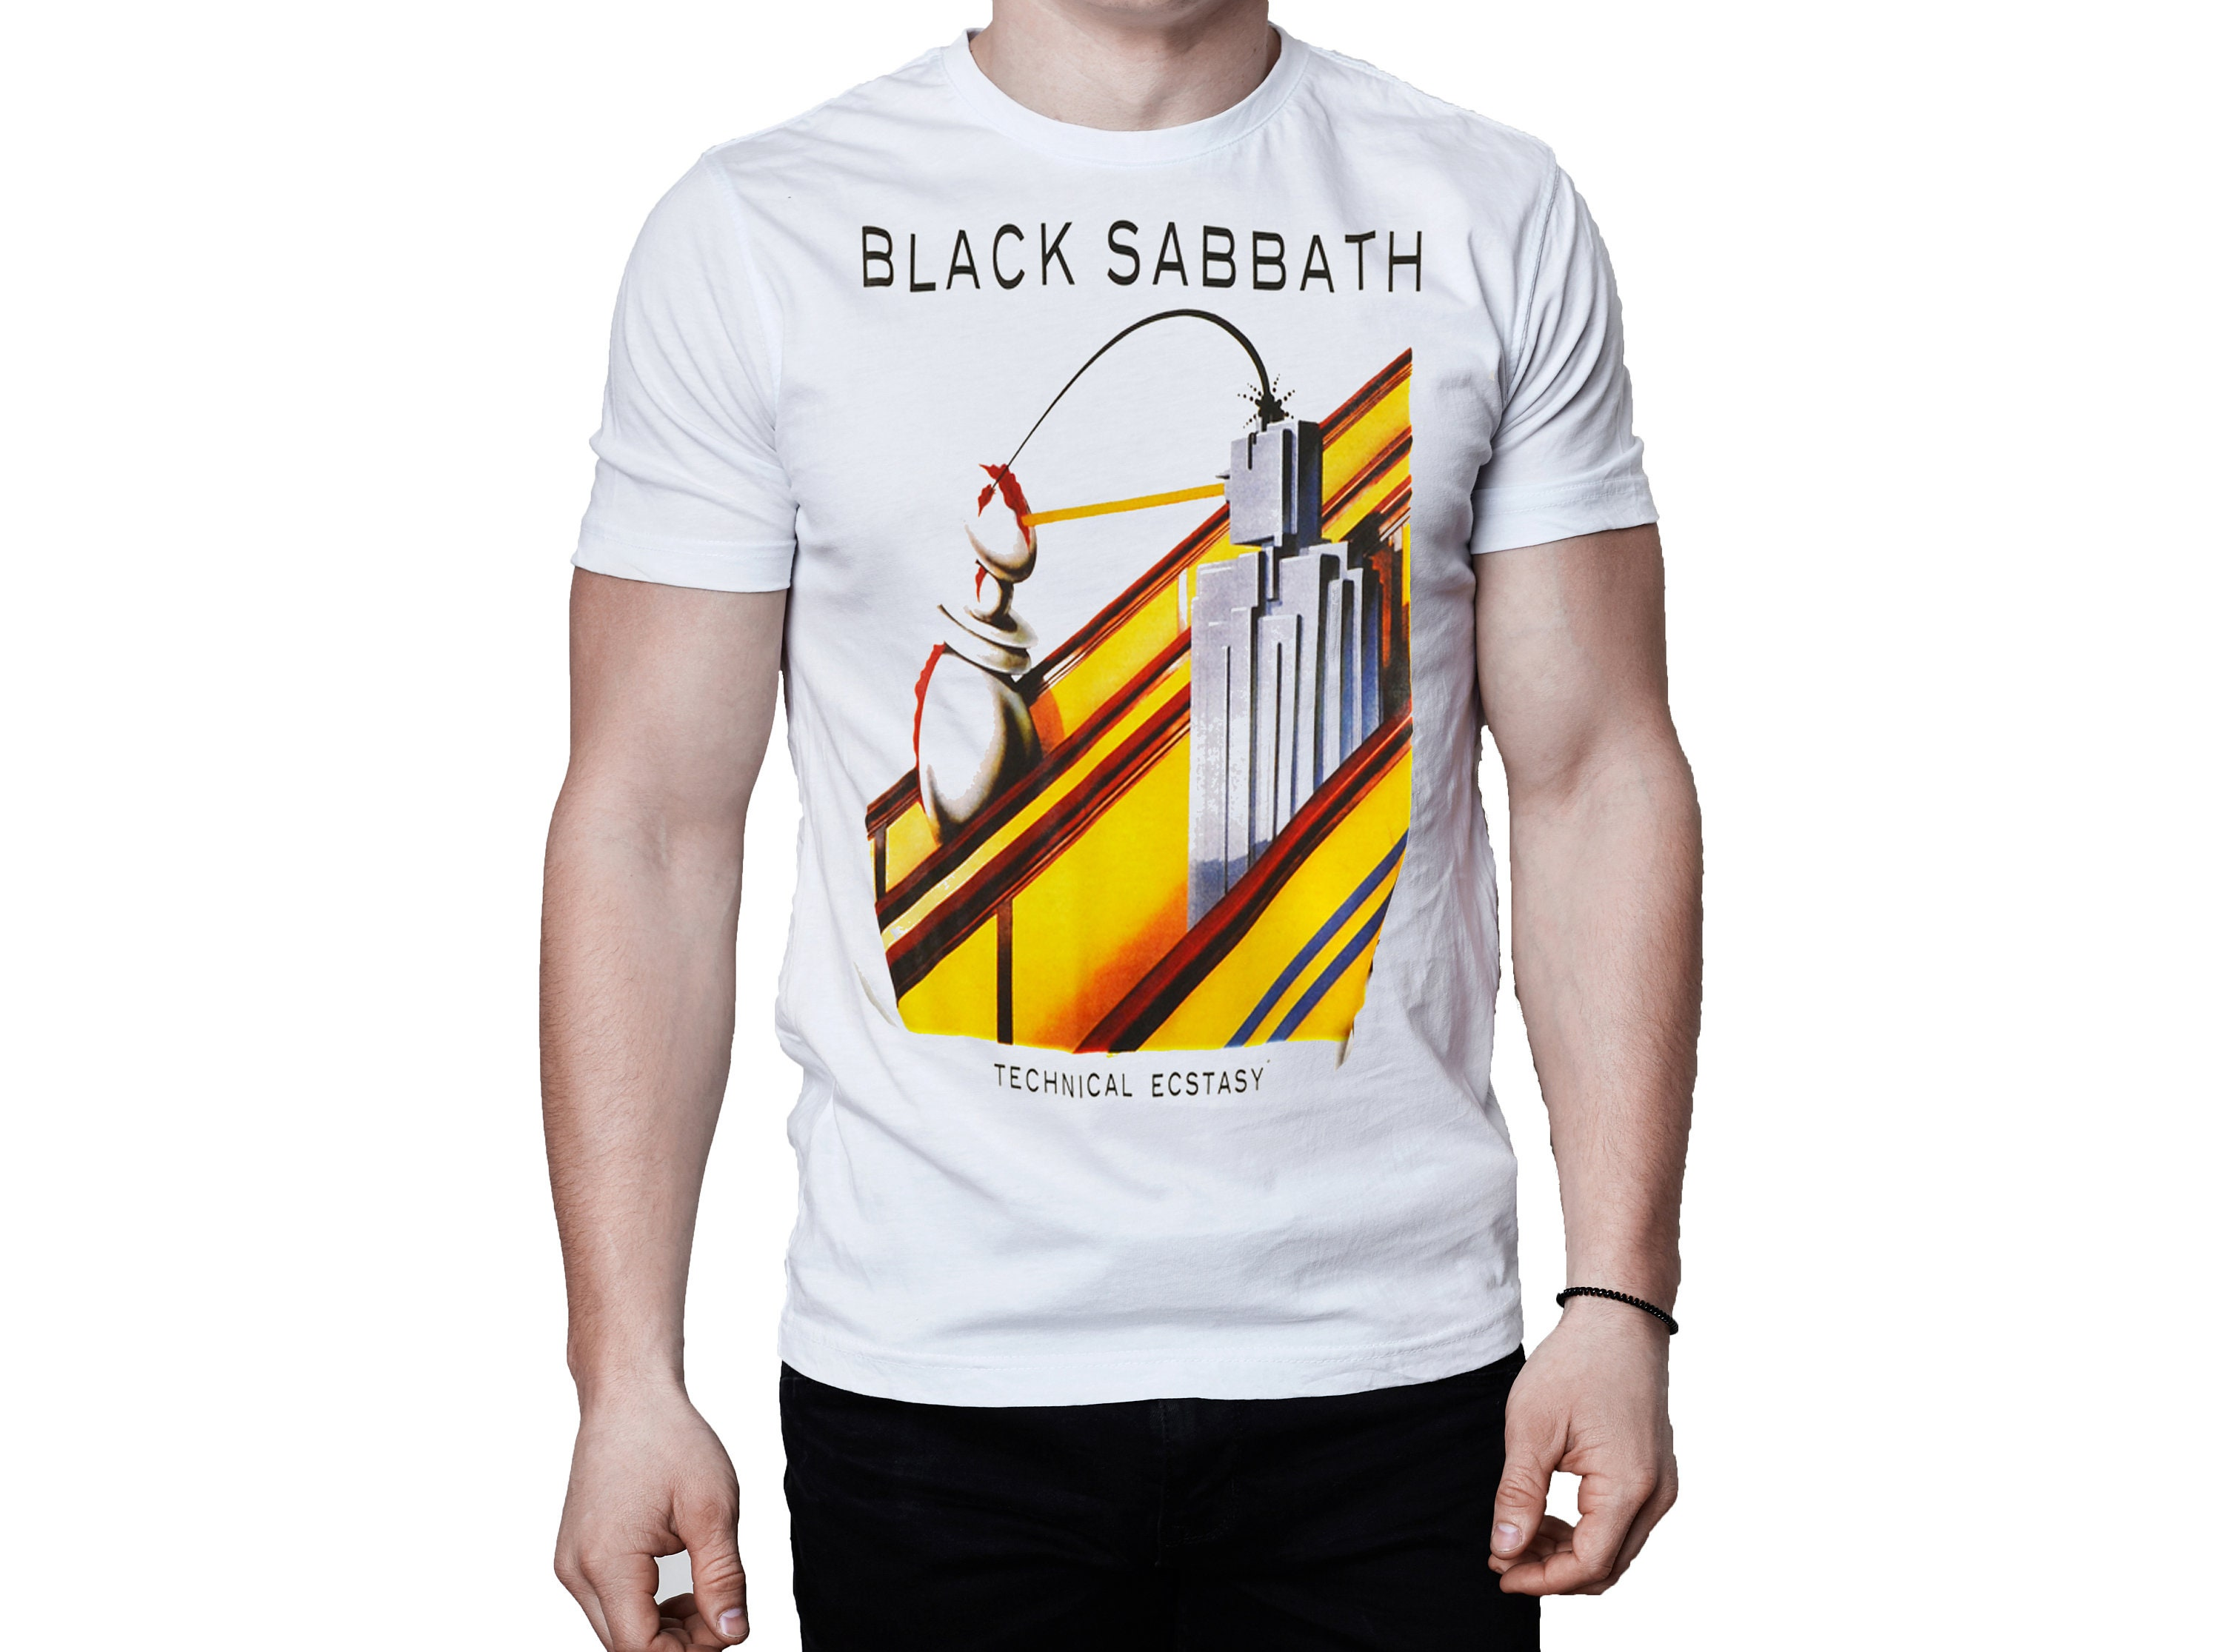 925a3c4a64 Black sabbath technical ecstasy album shirt jpg 3000x2231 Black sabbath  technical ecstasy shirt